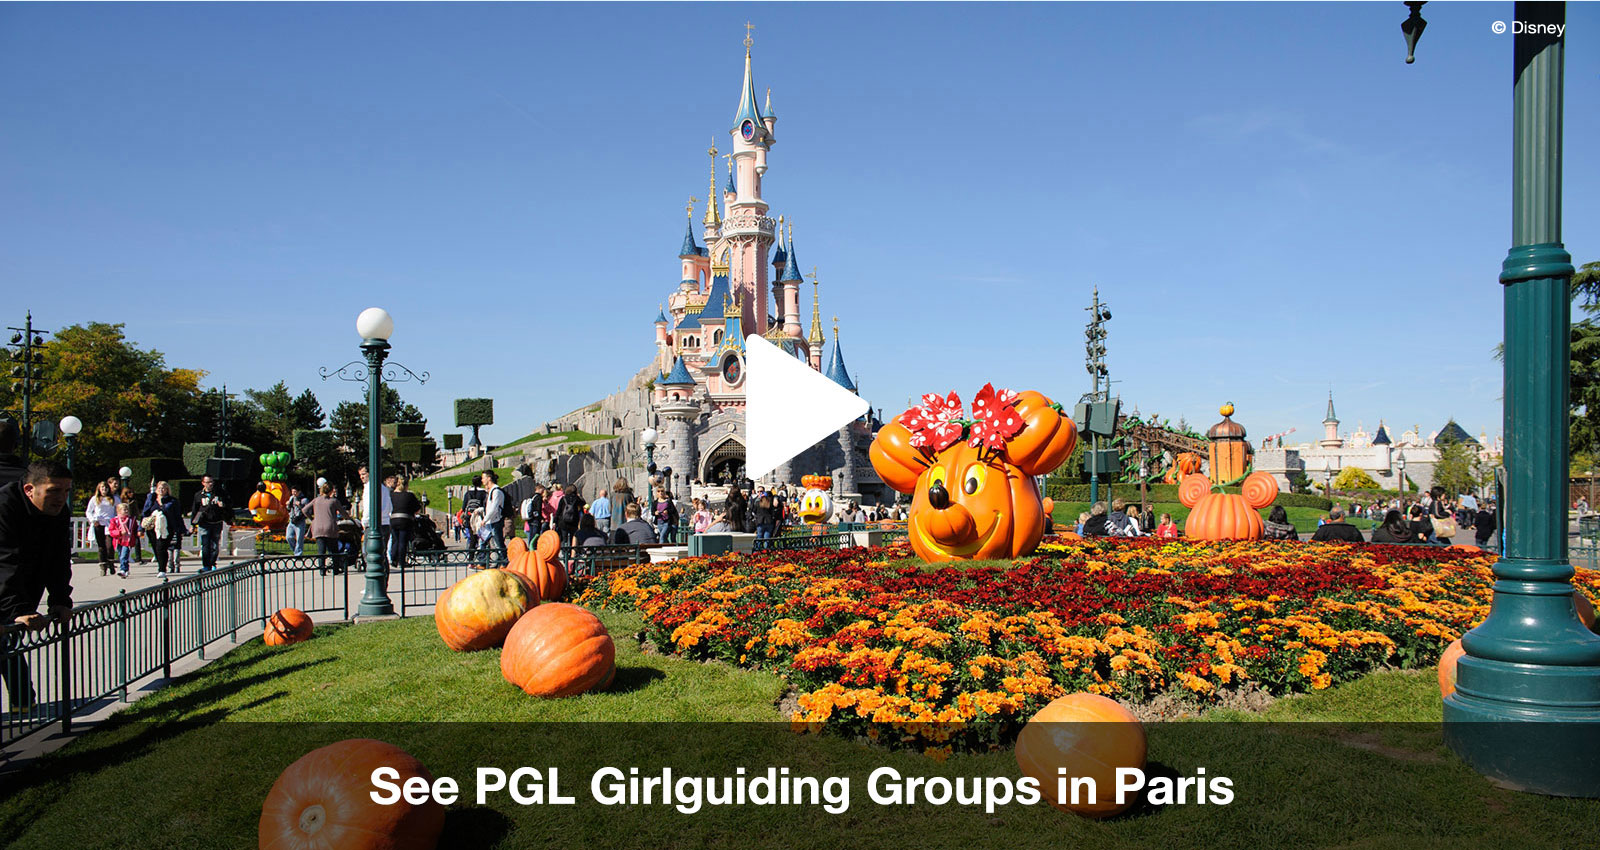 Paris and Disneyland offers for uniformed groups